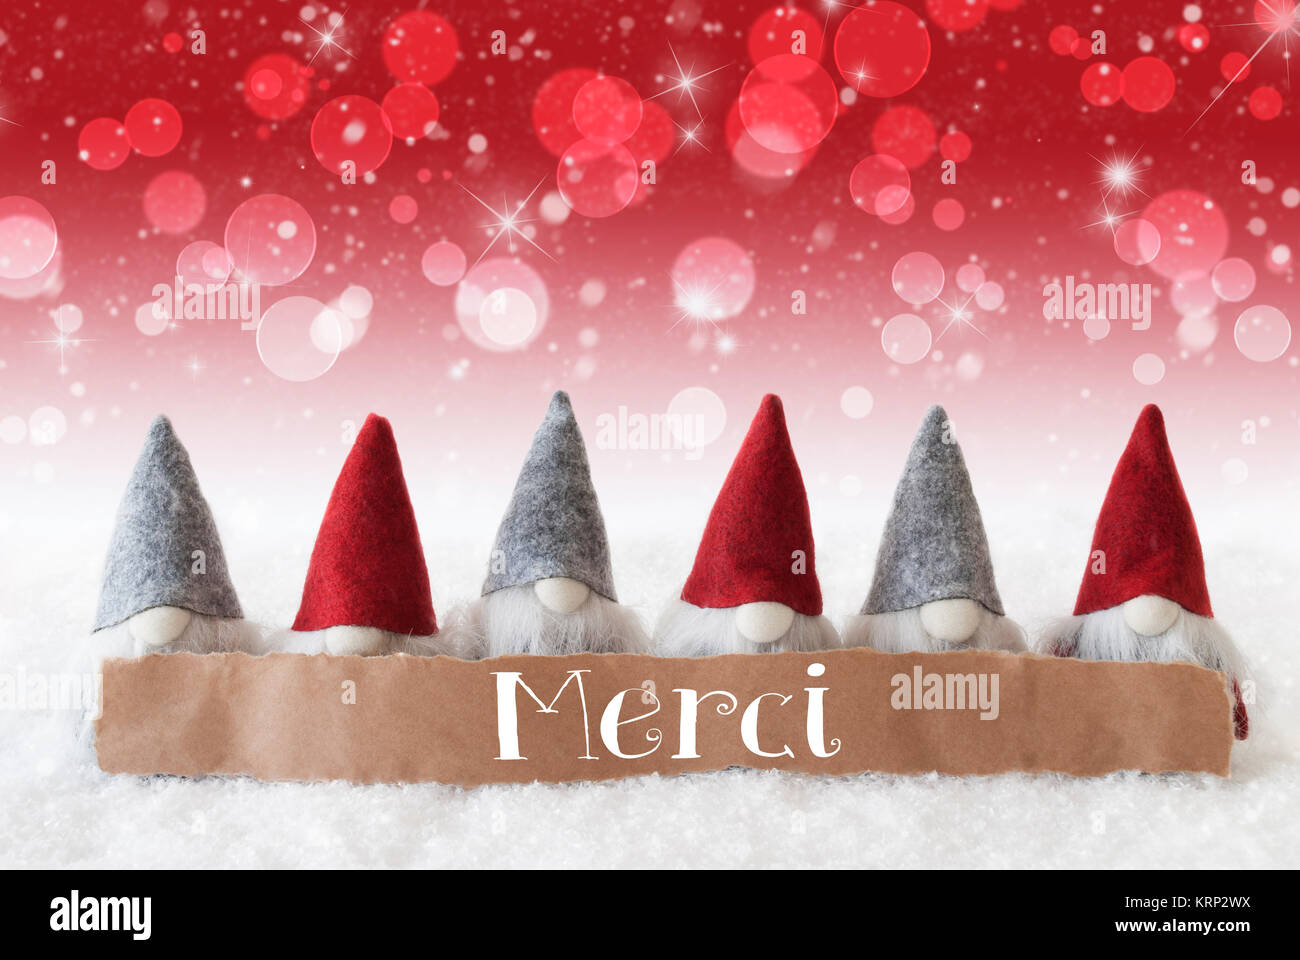 Label with french text merci means thank you christmas greeting label with french text merci means thank you christmas greeting card with red gnomes sparkling bokeh and christmassy background with snow and stars m4hsunfo